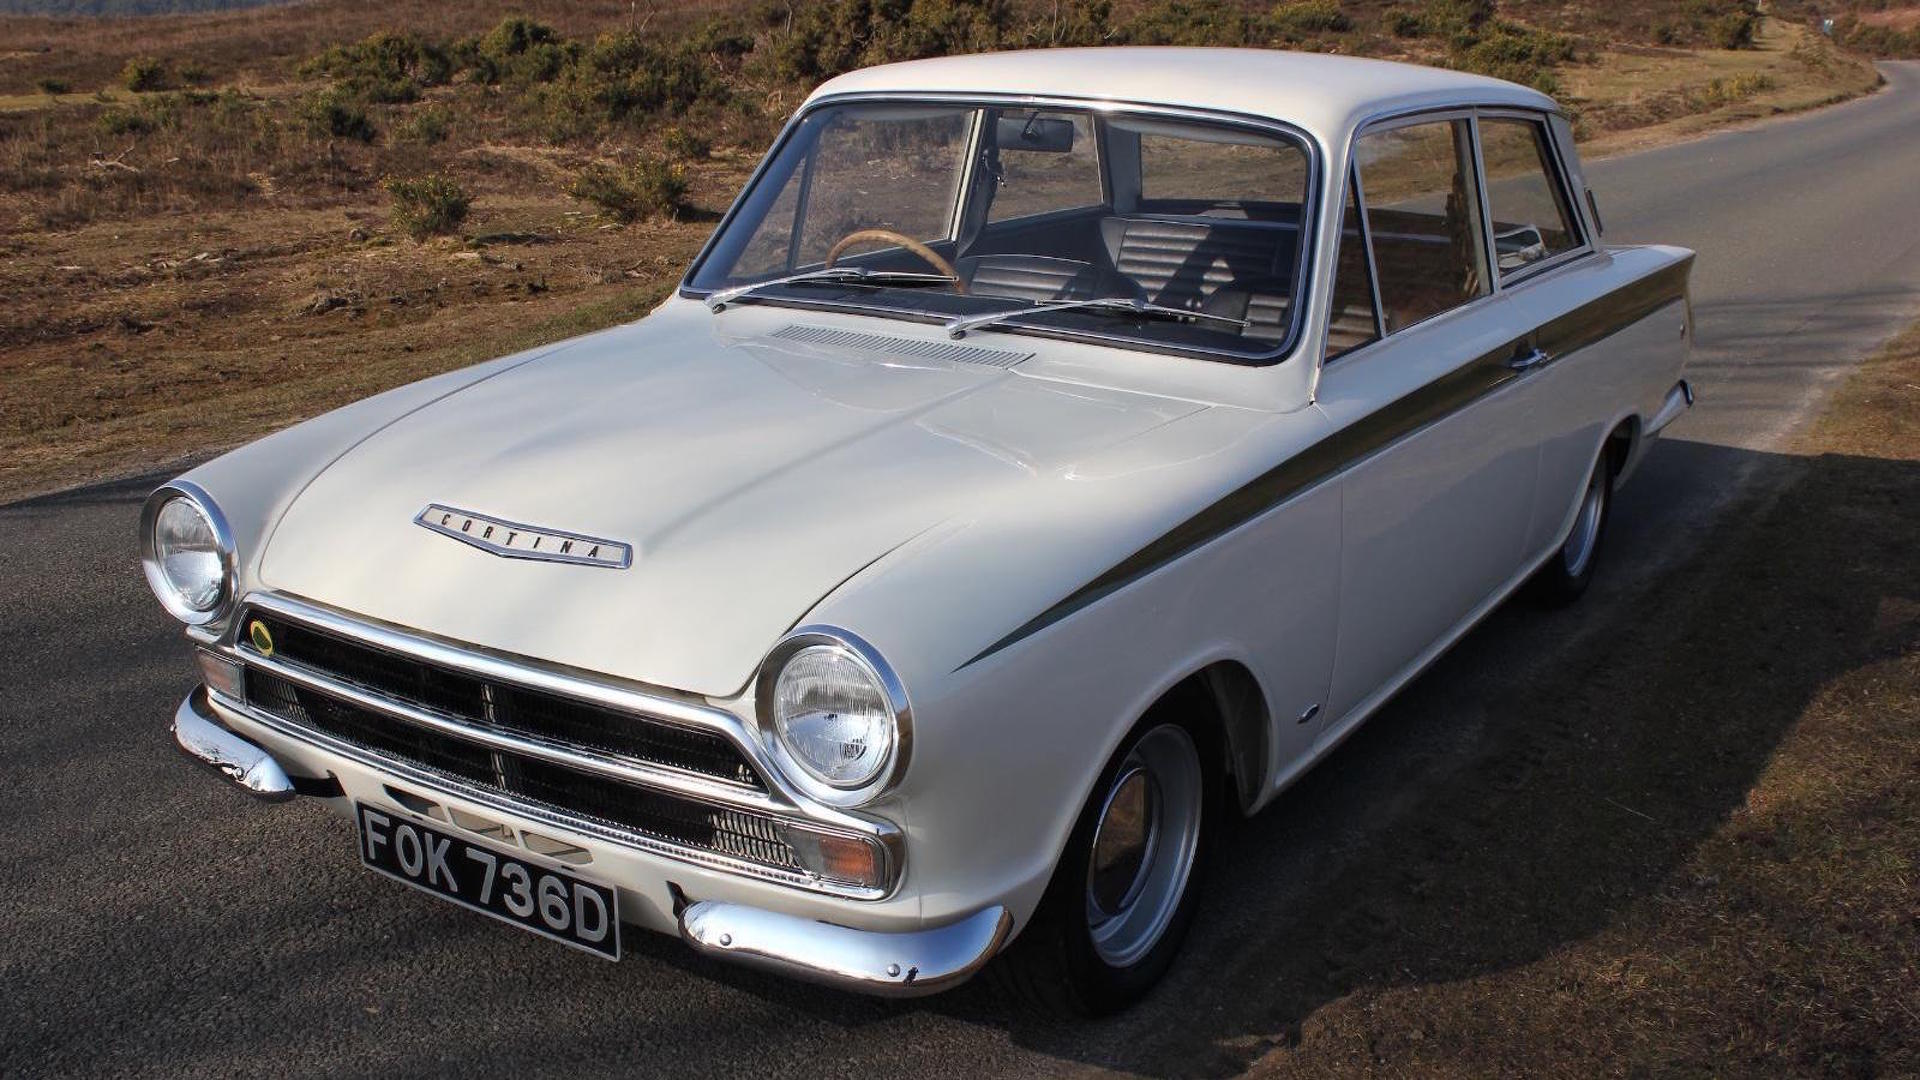 Beautifully restored 1966 Lotus Cortina looking for a new home